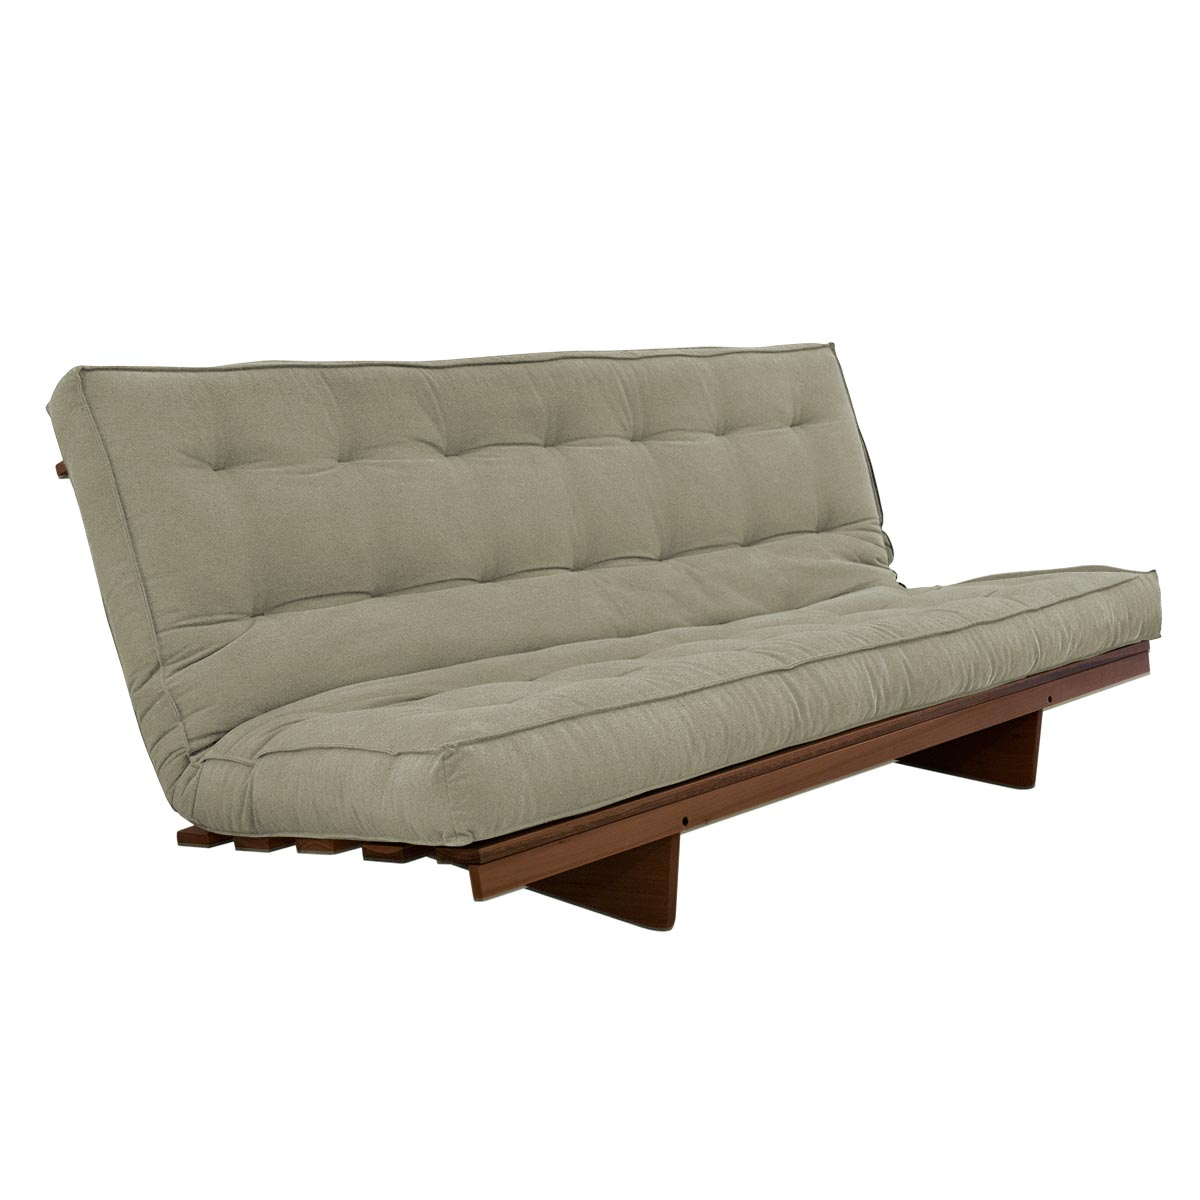 Futon sofa cama for Fabrica sofa cama 1 plaza